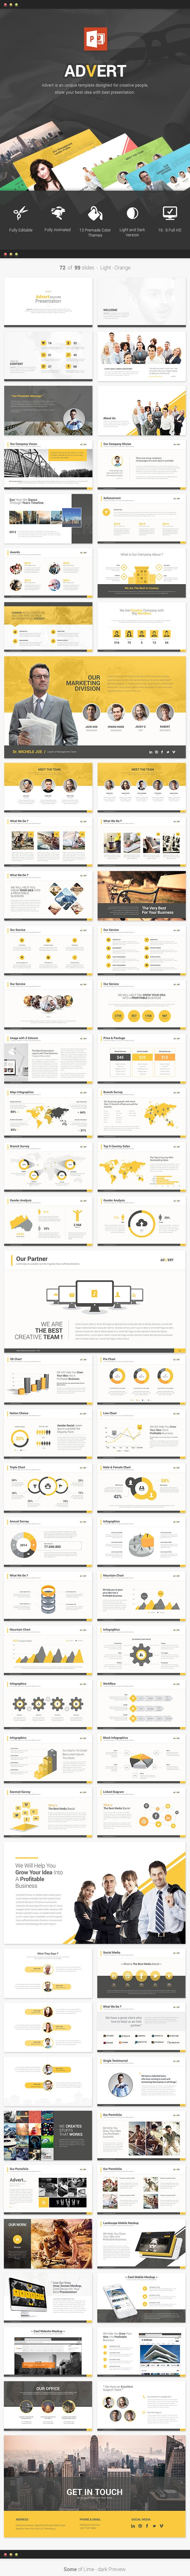 Advert - Powerpoint Template - Creative PowerPoint Templates